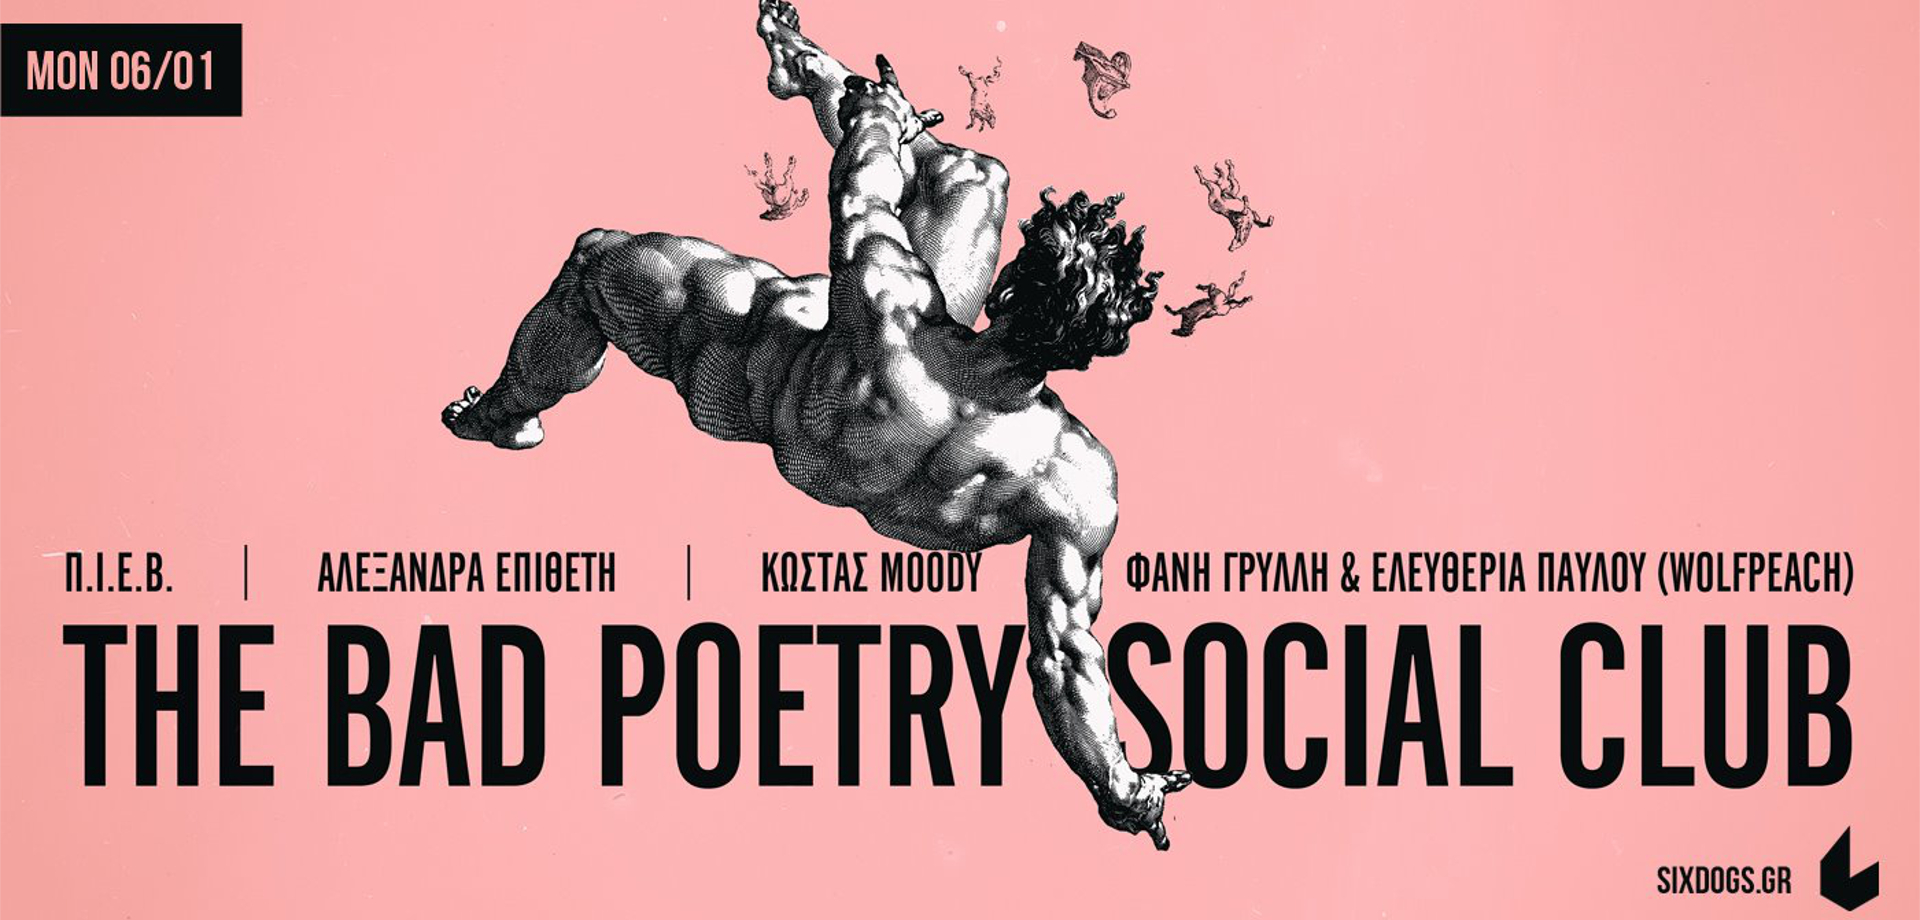 The Bad Poetry Social Club six d.o.g.s